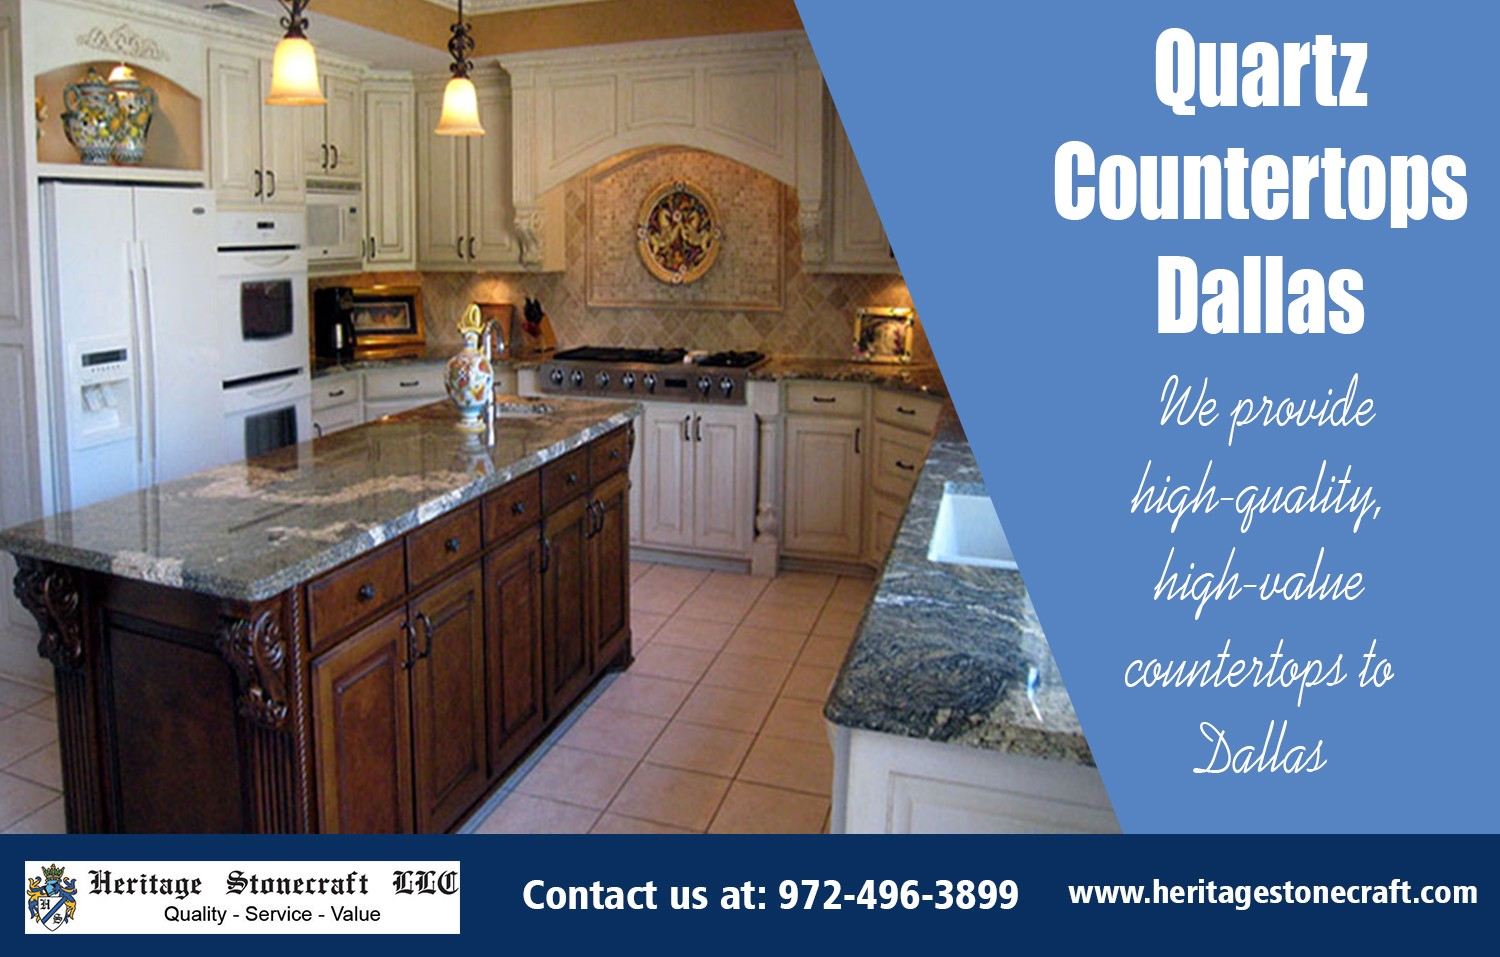 White Quartz Countertops Dallas Https